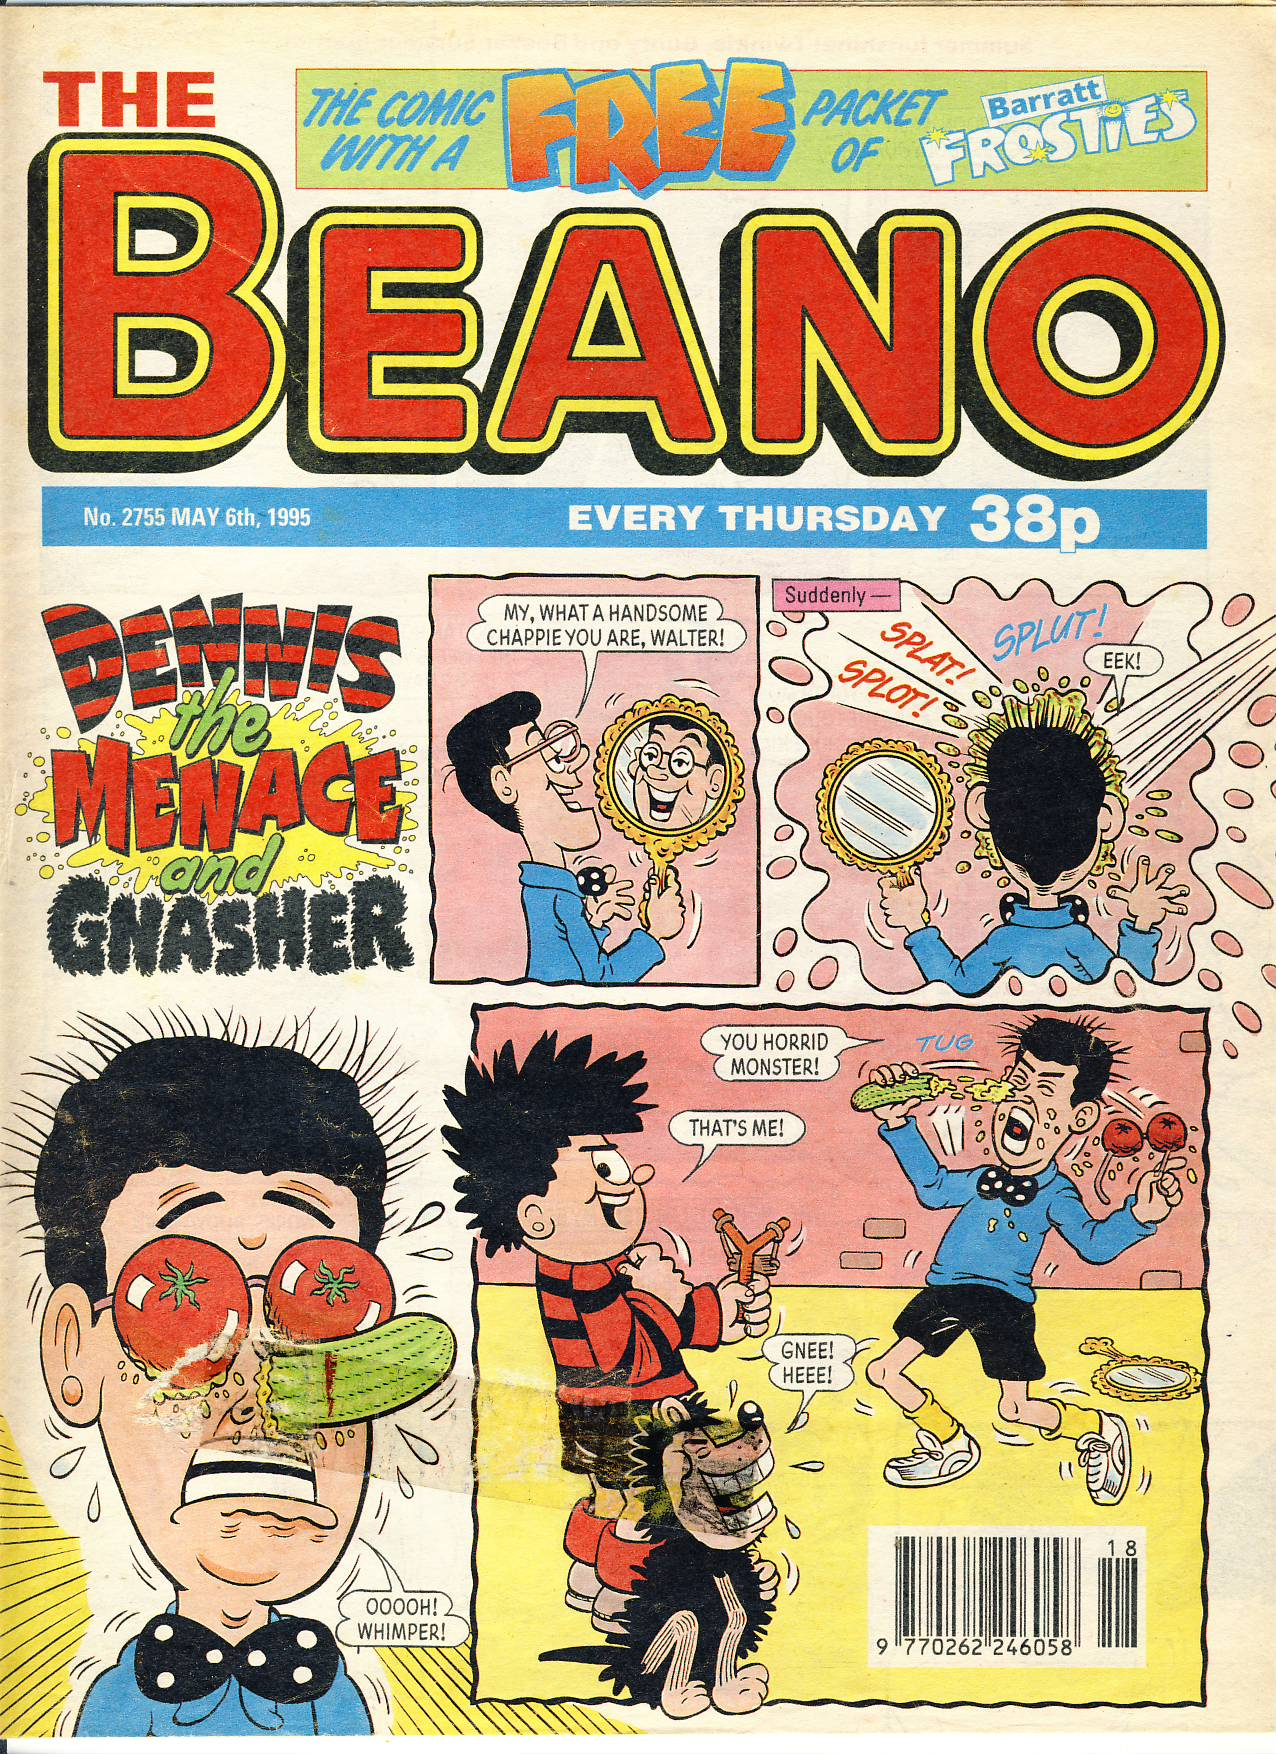 1995 May 6th BEANO vintage comic Good Gift Christmas Present Birthday Anniversary ref206 a pre-owned item in very good read condition.